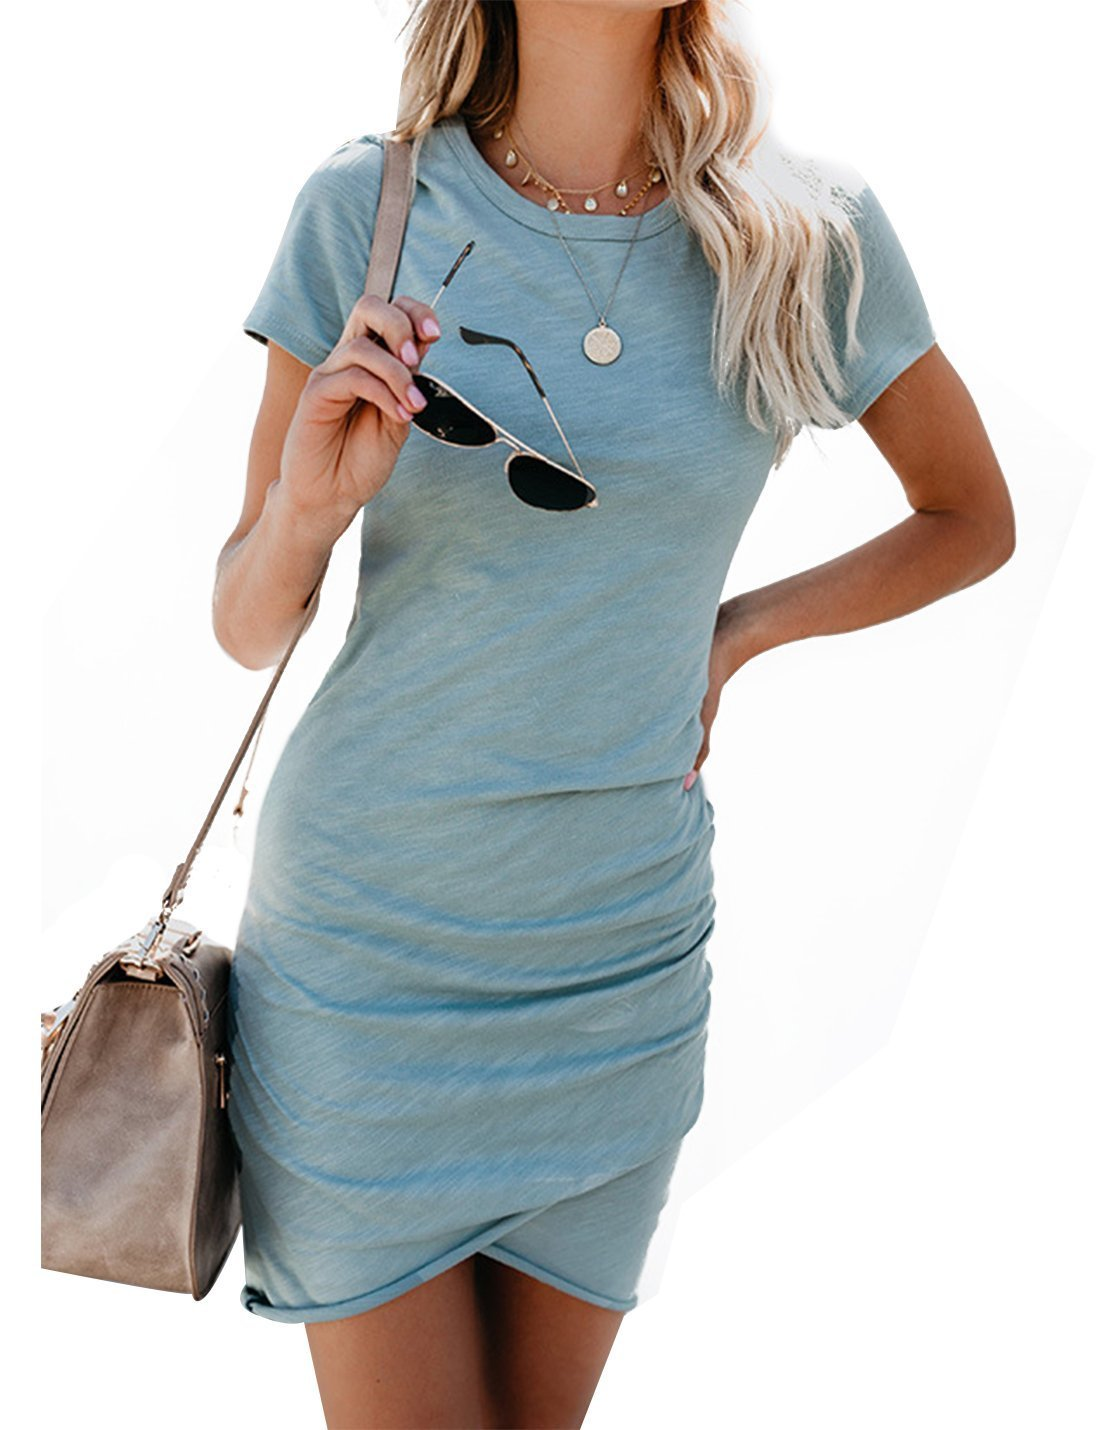 CAIYING Womens Summer Casual Solid Ruched Short Sleeve T-Shirt Midi Dress (Light Blue, S)